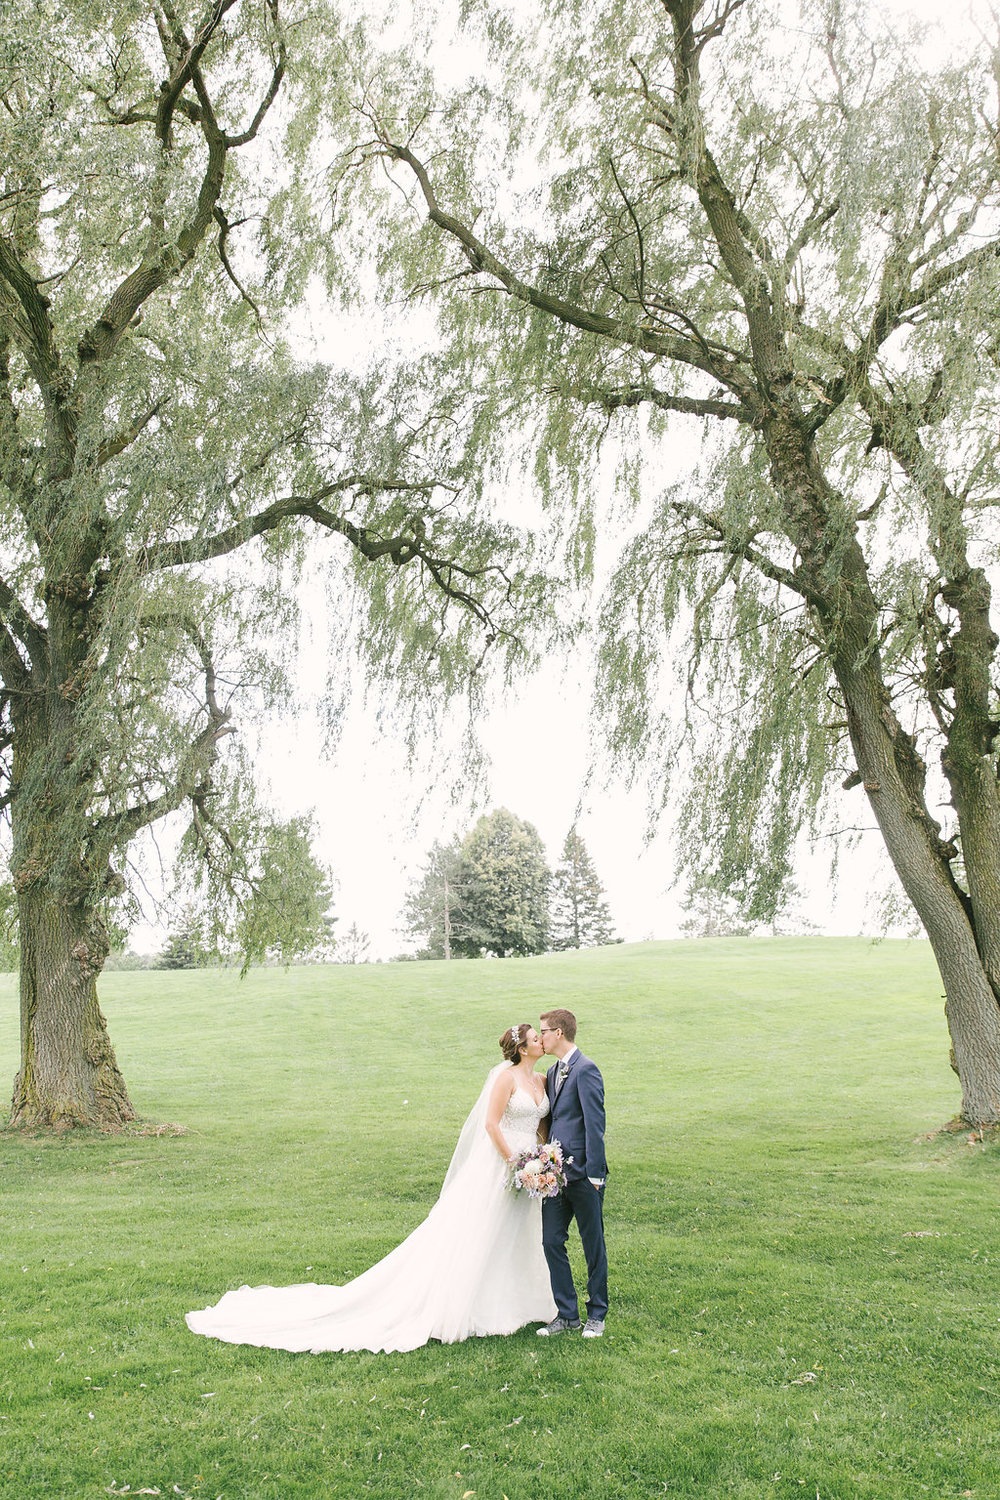 Flamborough Hills Golf Club Wedding | spunkysapphire.com